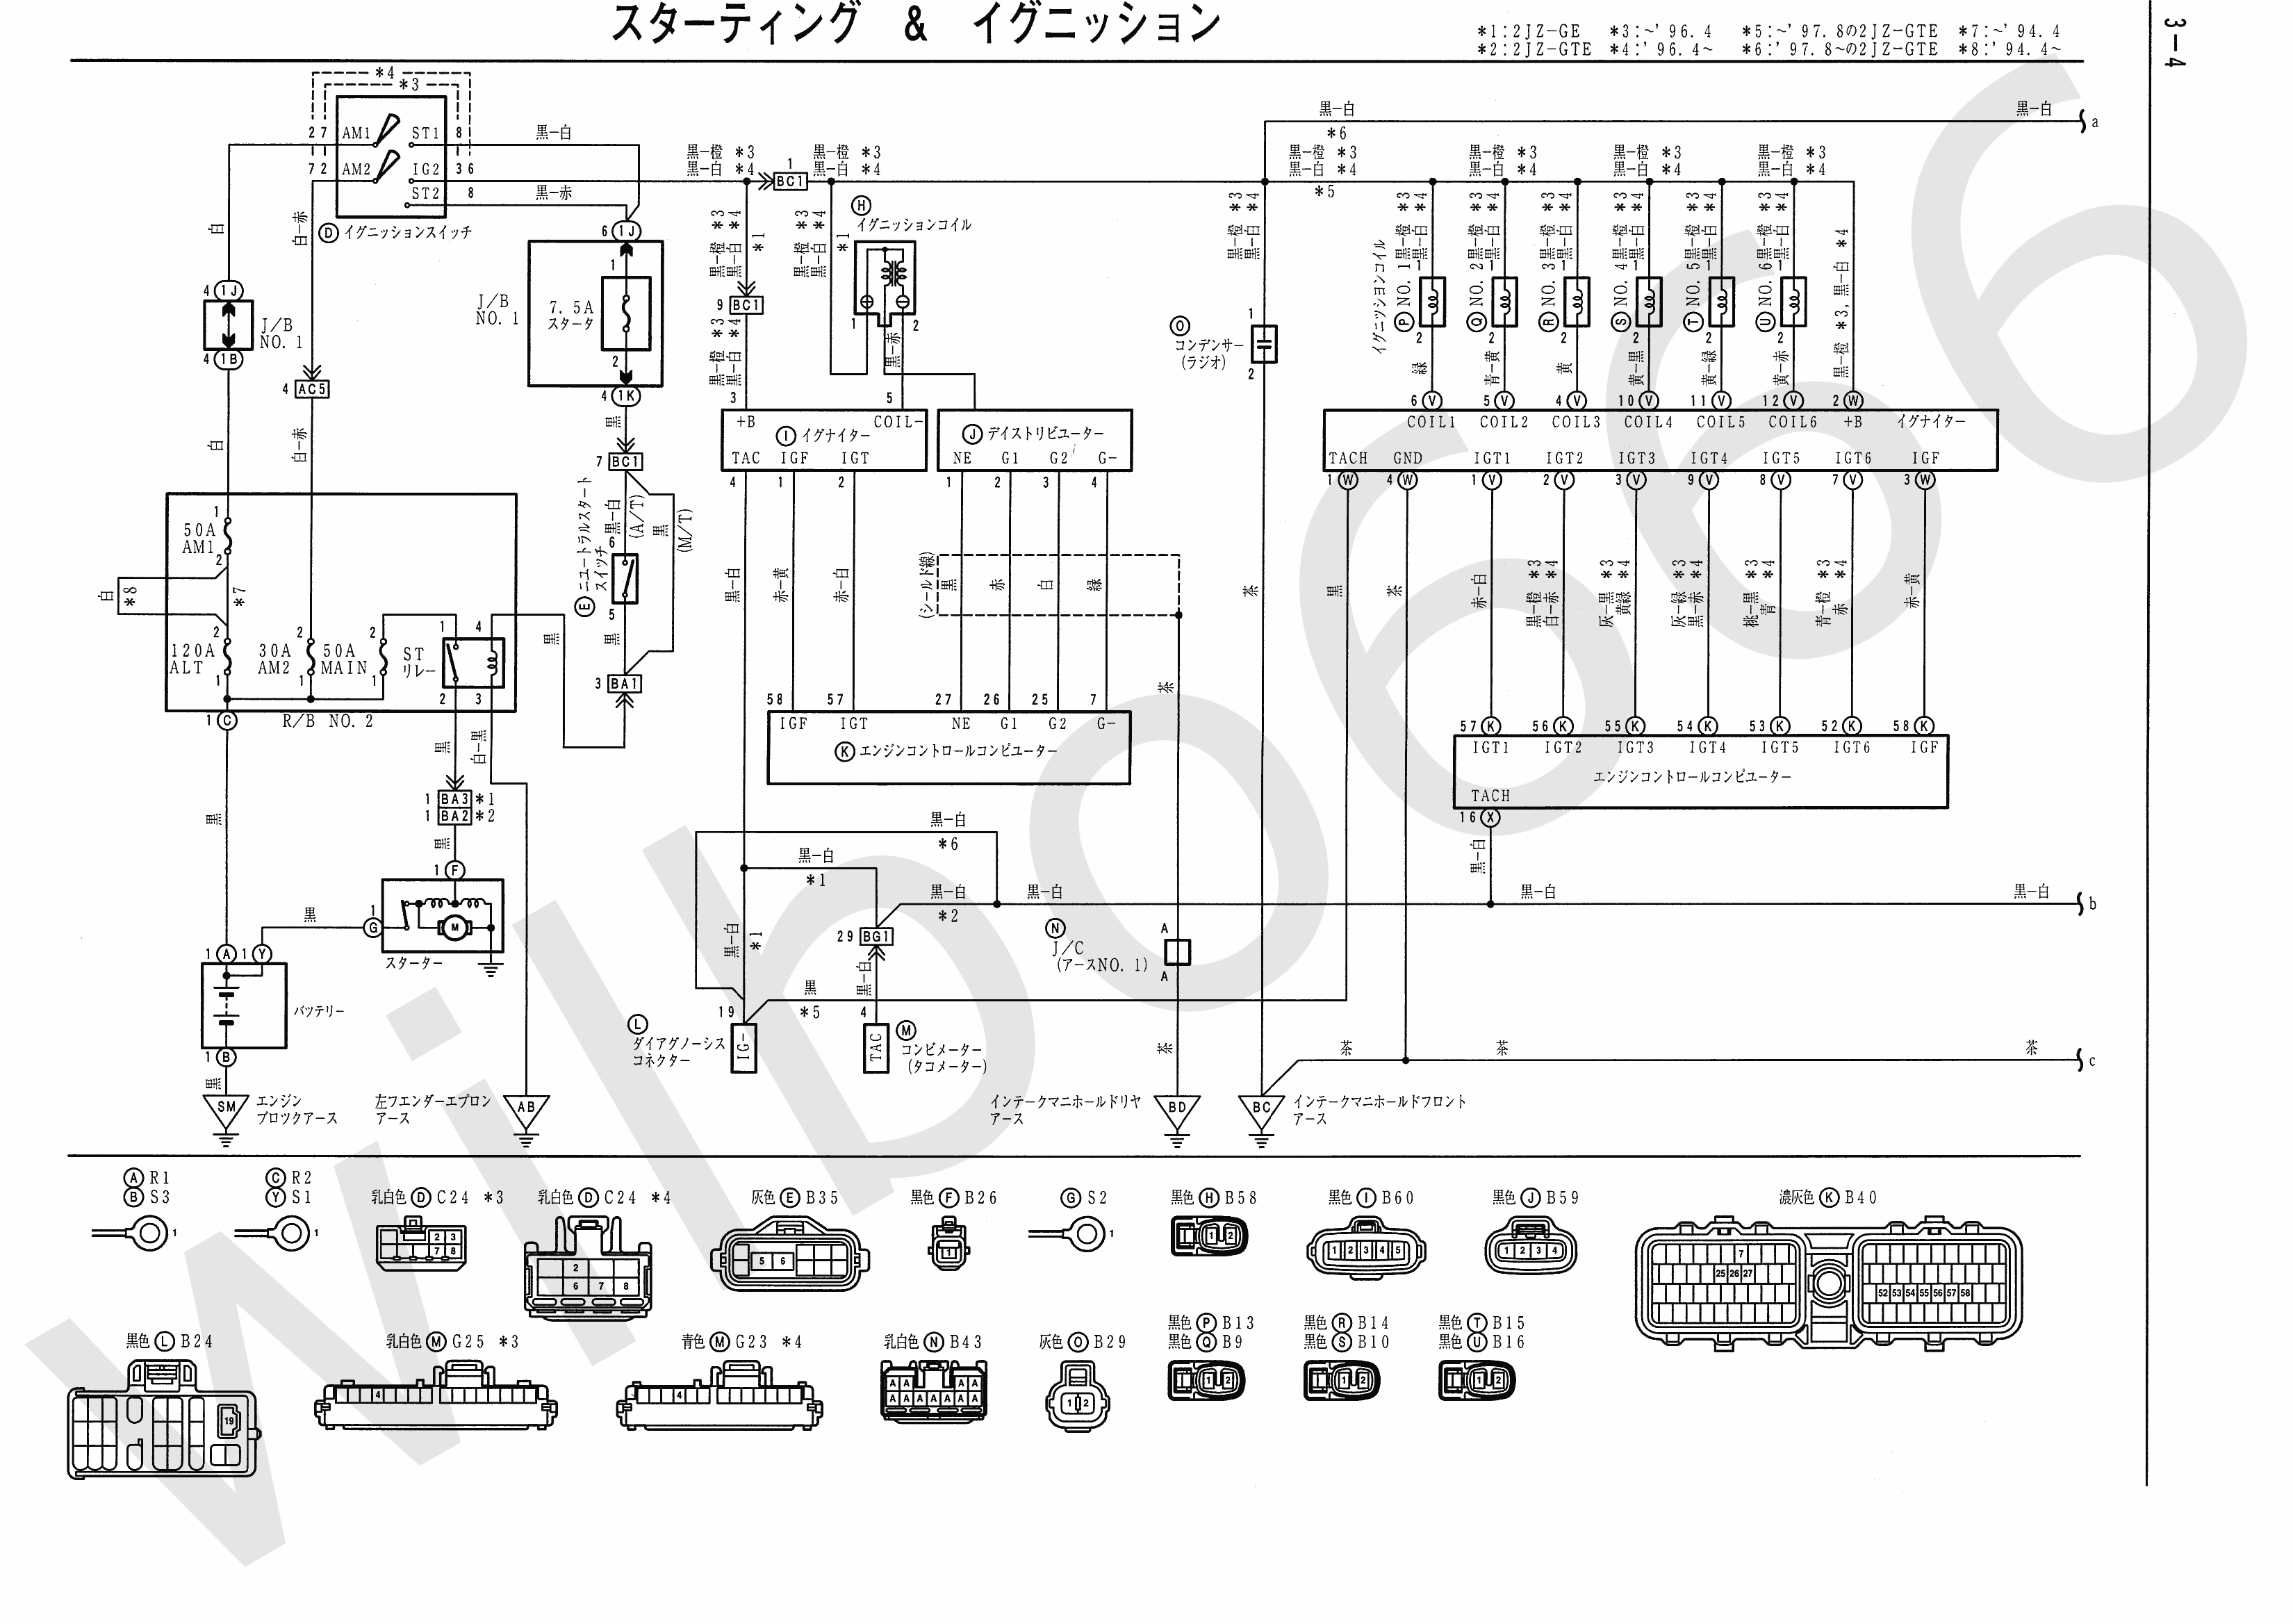 Fantastic eurovox wiring diagram illustration electrical and luxury eurovox wiring diagram sketch wiring diagram ideas asfbconference2016 Choice Image